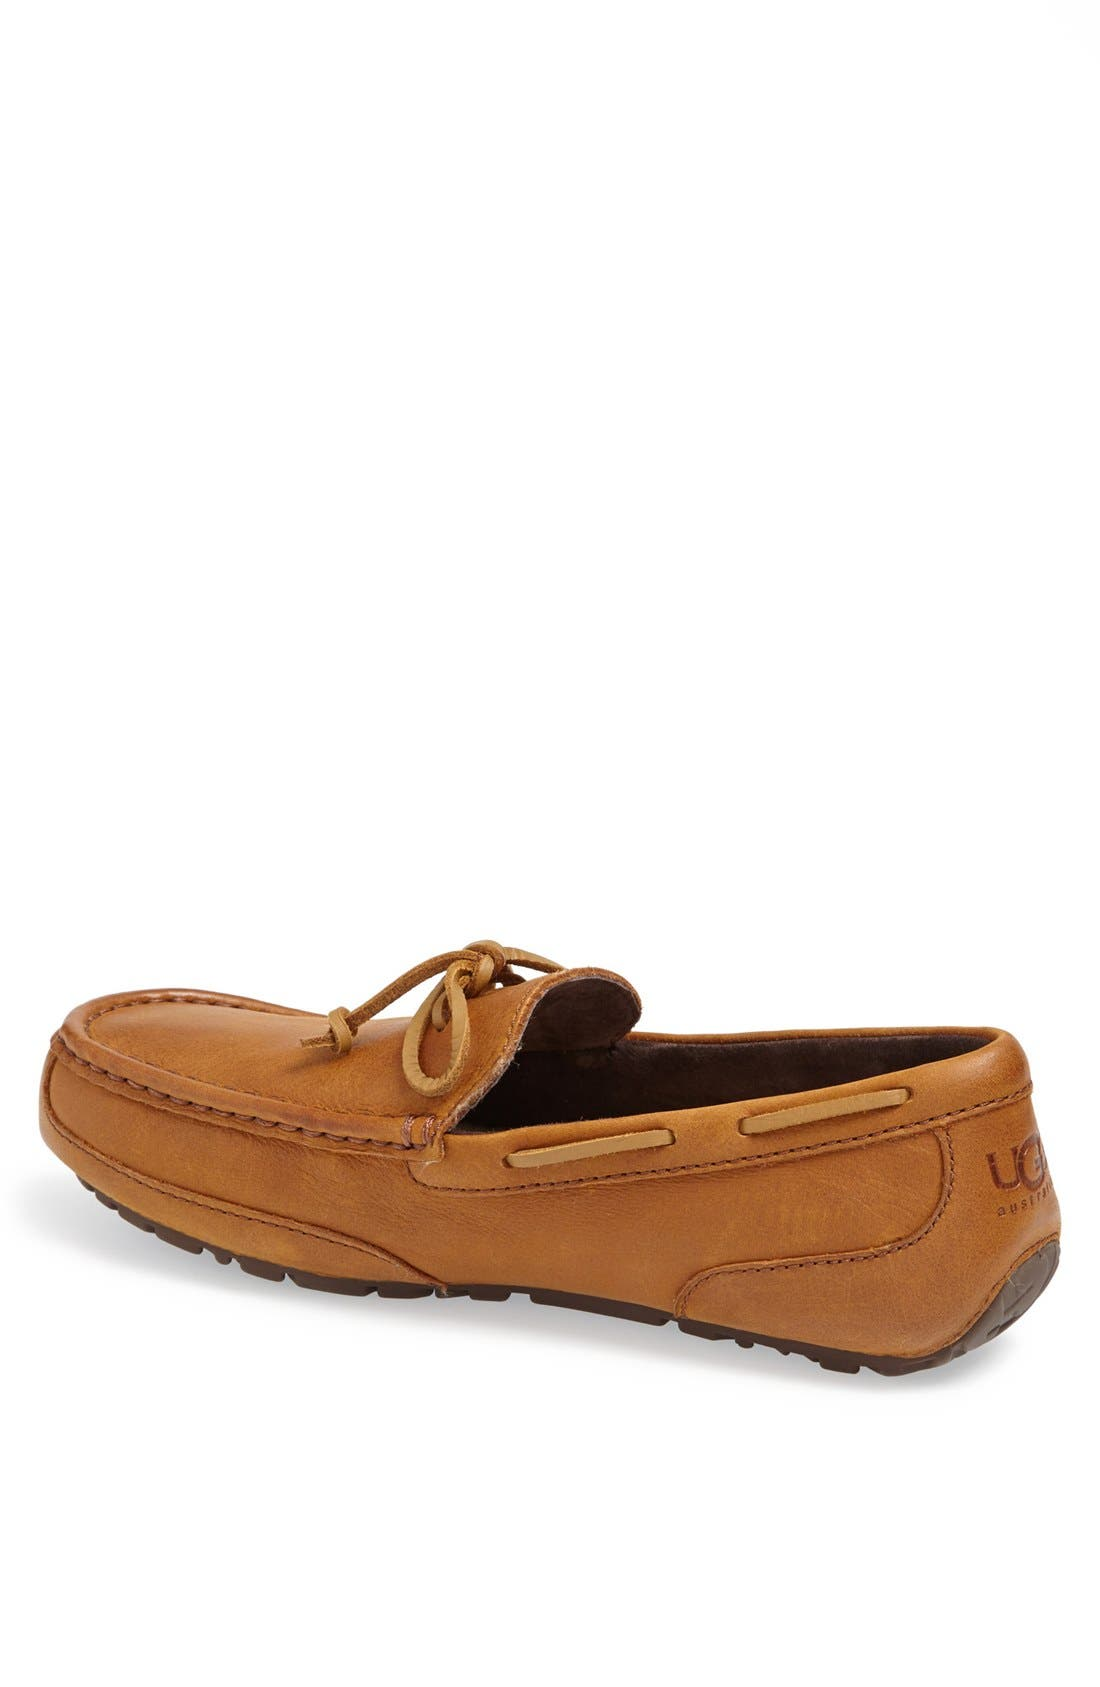 'Chester' Driving Loafer,                             Alternate thumbnail 14, color,